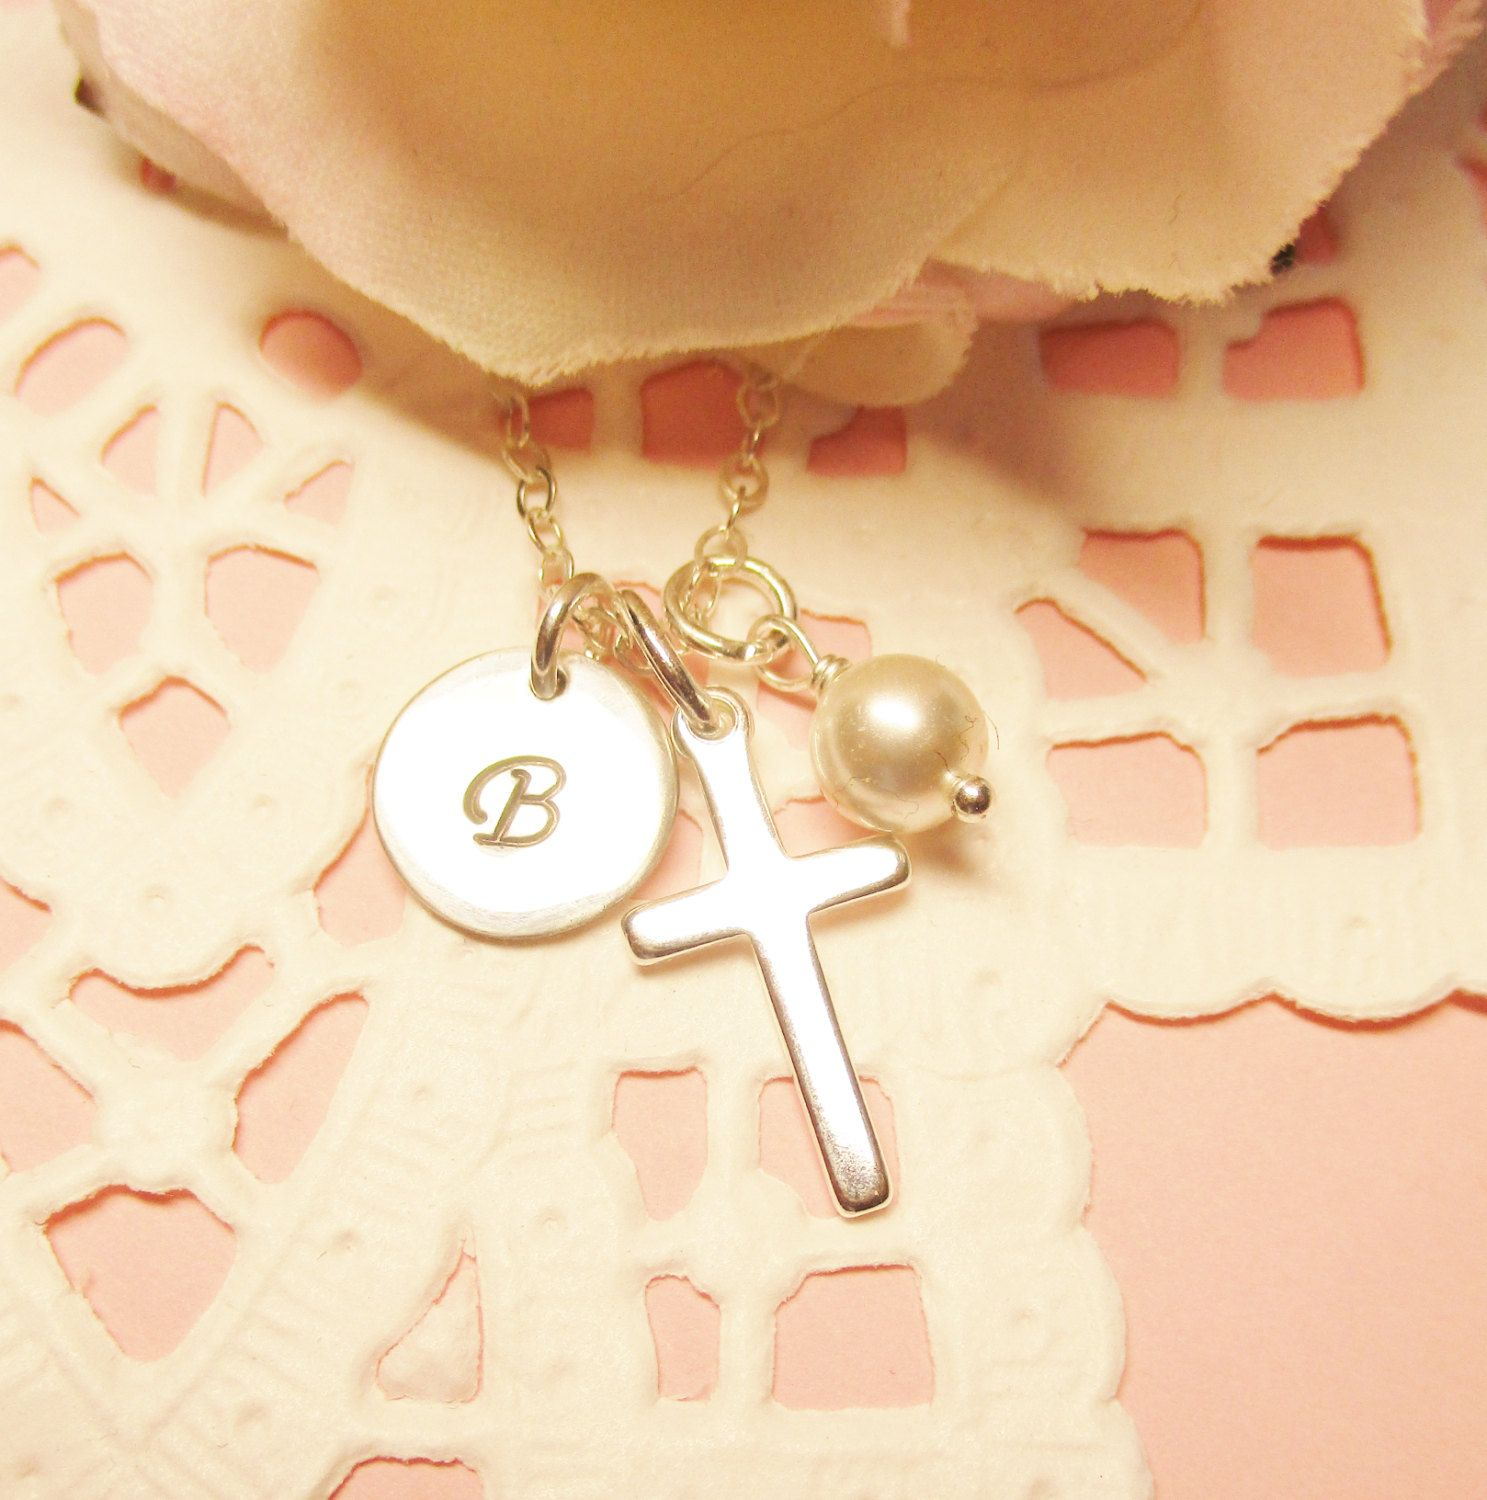 baptism necklace oro kt in stroili intl gold girocollo en